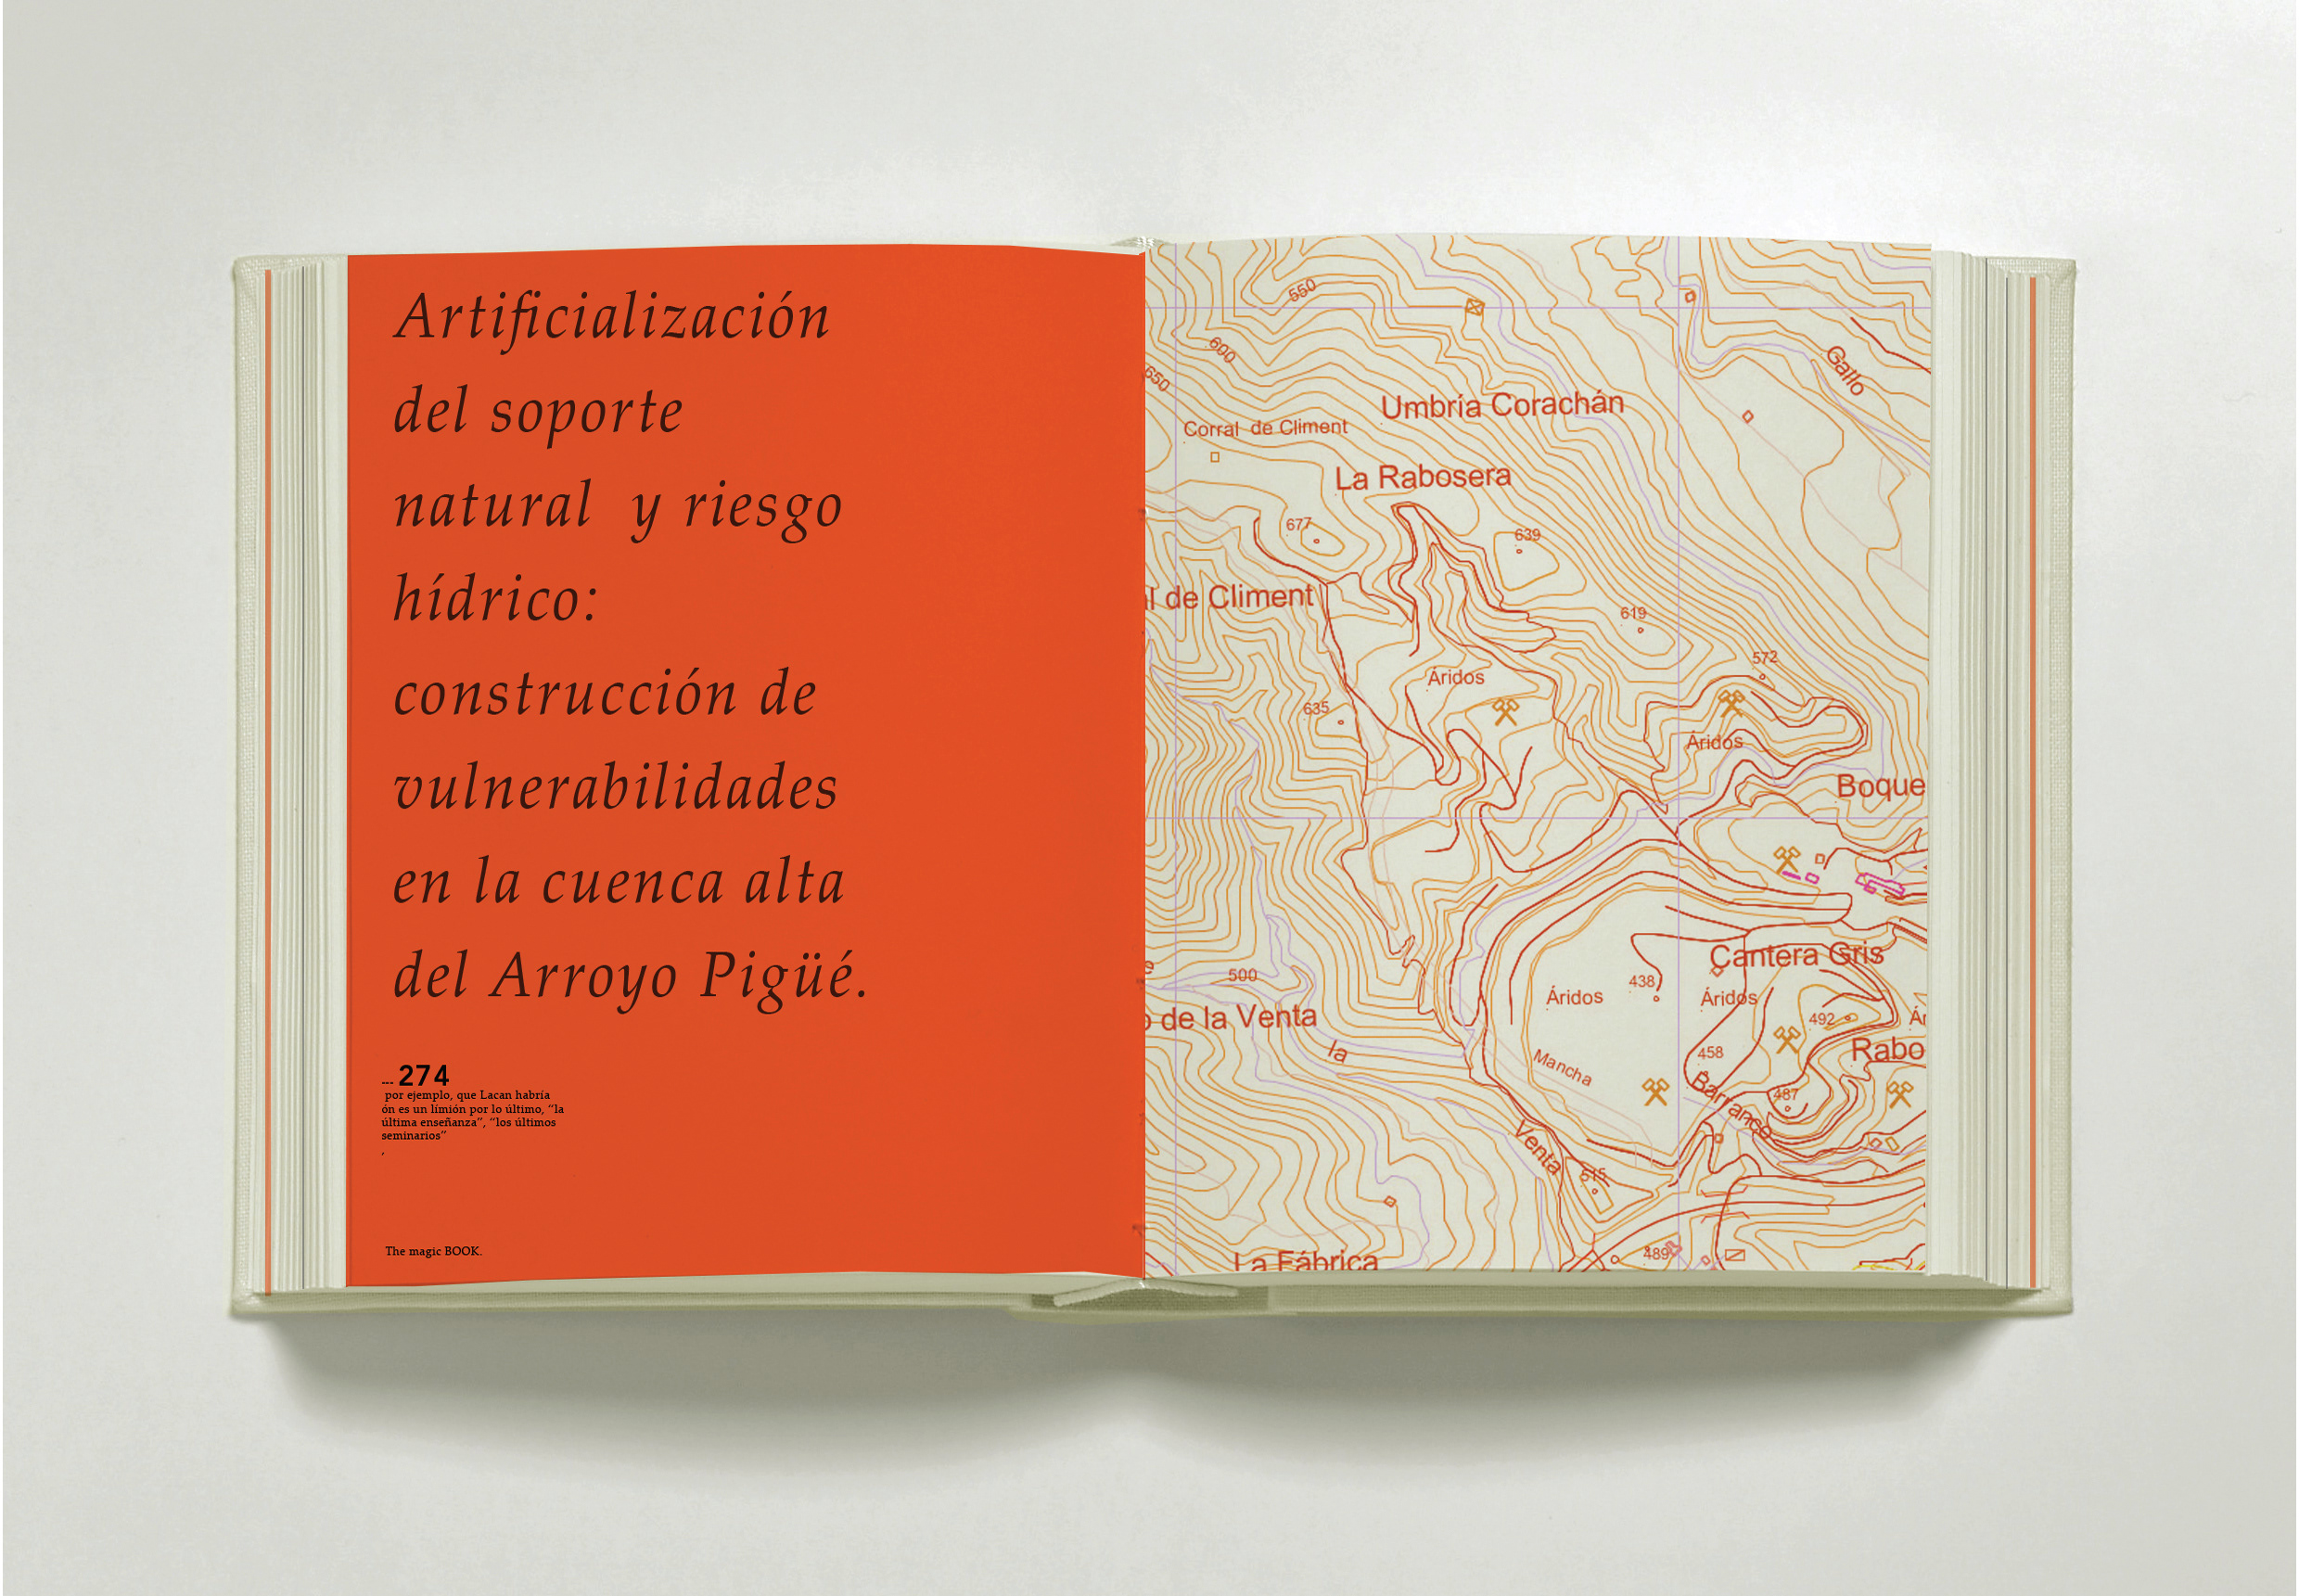 Thesis book, Roca, 2012